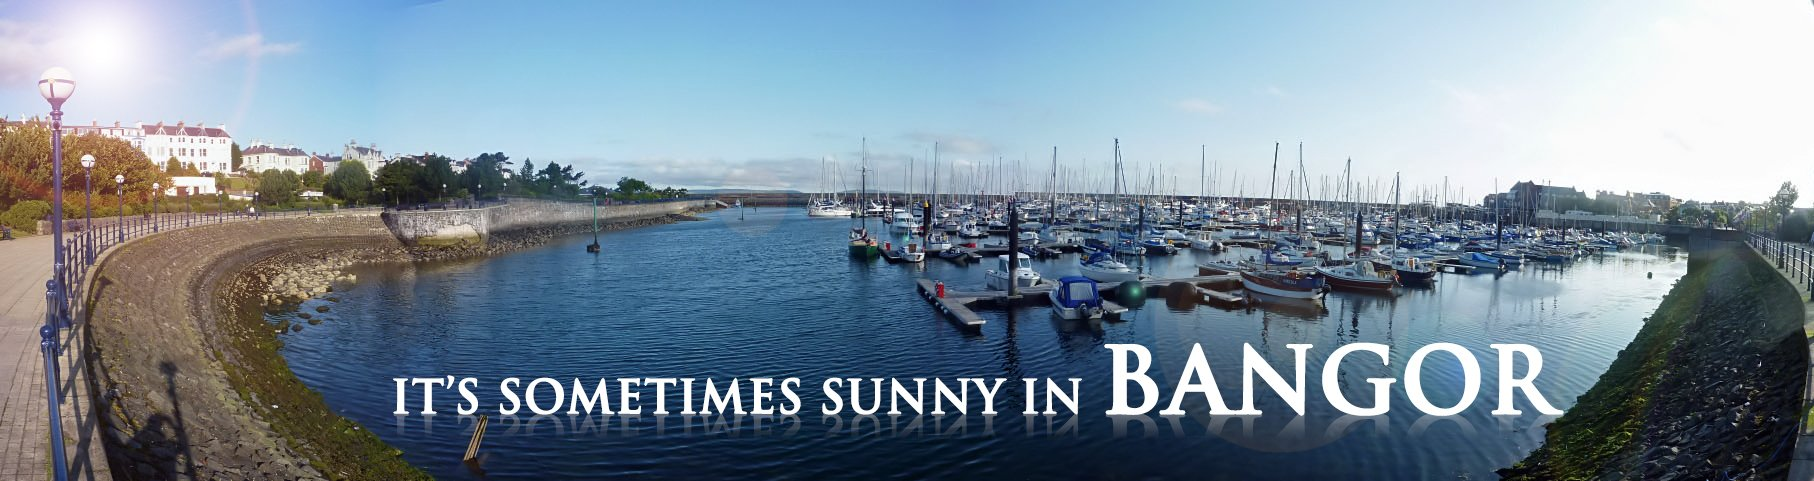 Bangor Northern Ireland: Tourism Attractions, Stories and Stuff - Things to do in the (Sometimes) Sunny Seaside Town of Bangor Northern Ireland